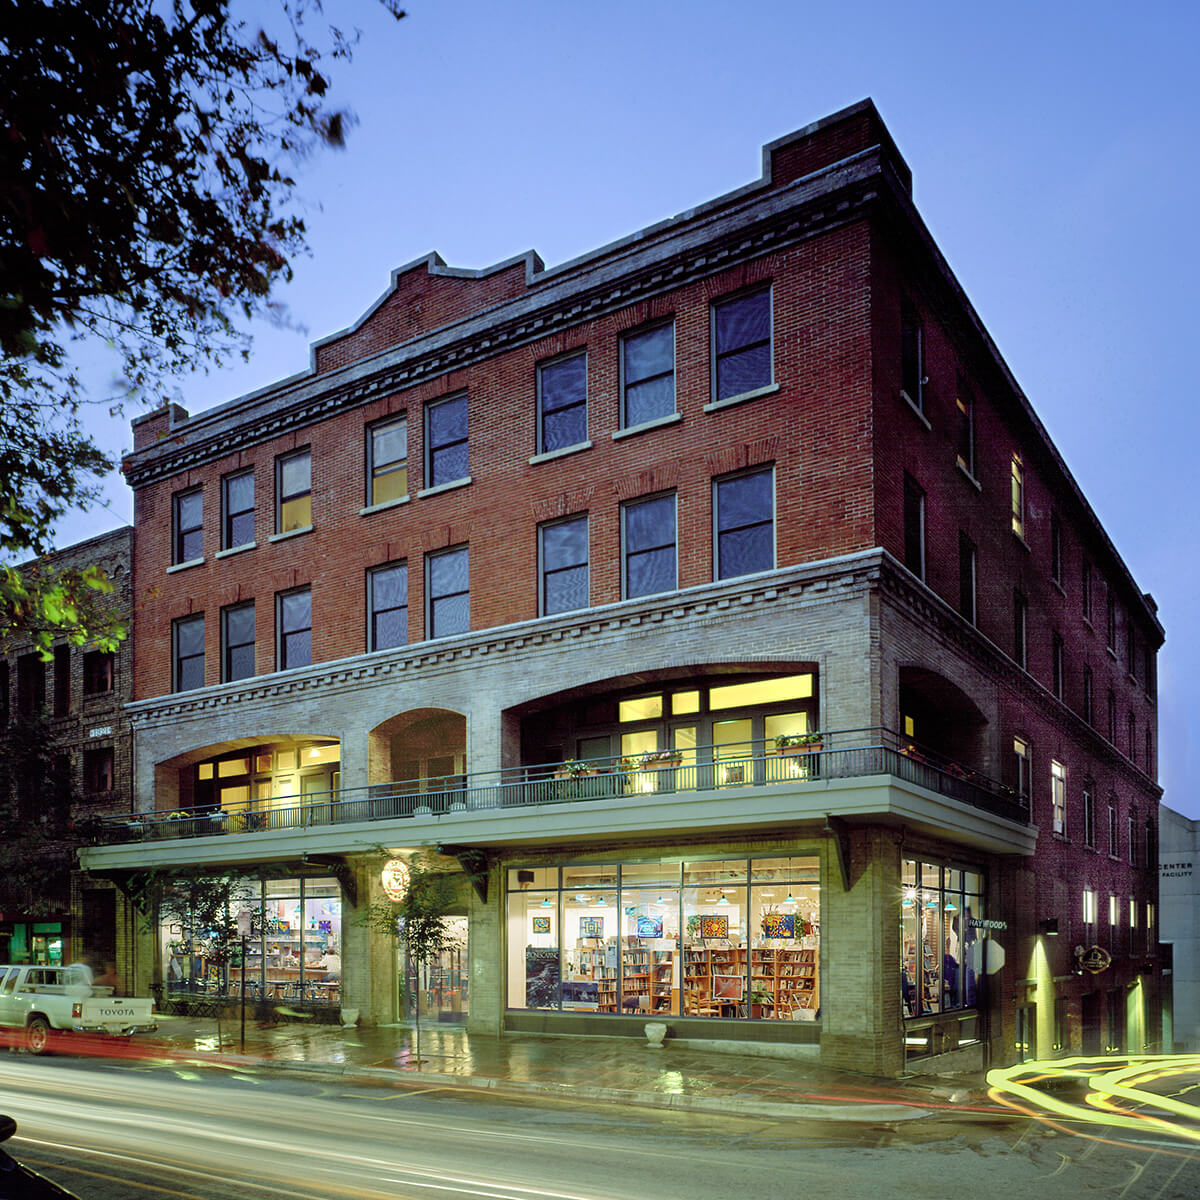 Asheville Hotel construction and architectural design